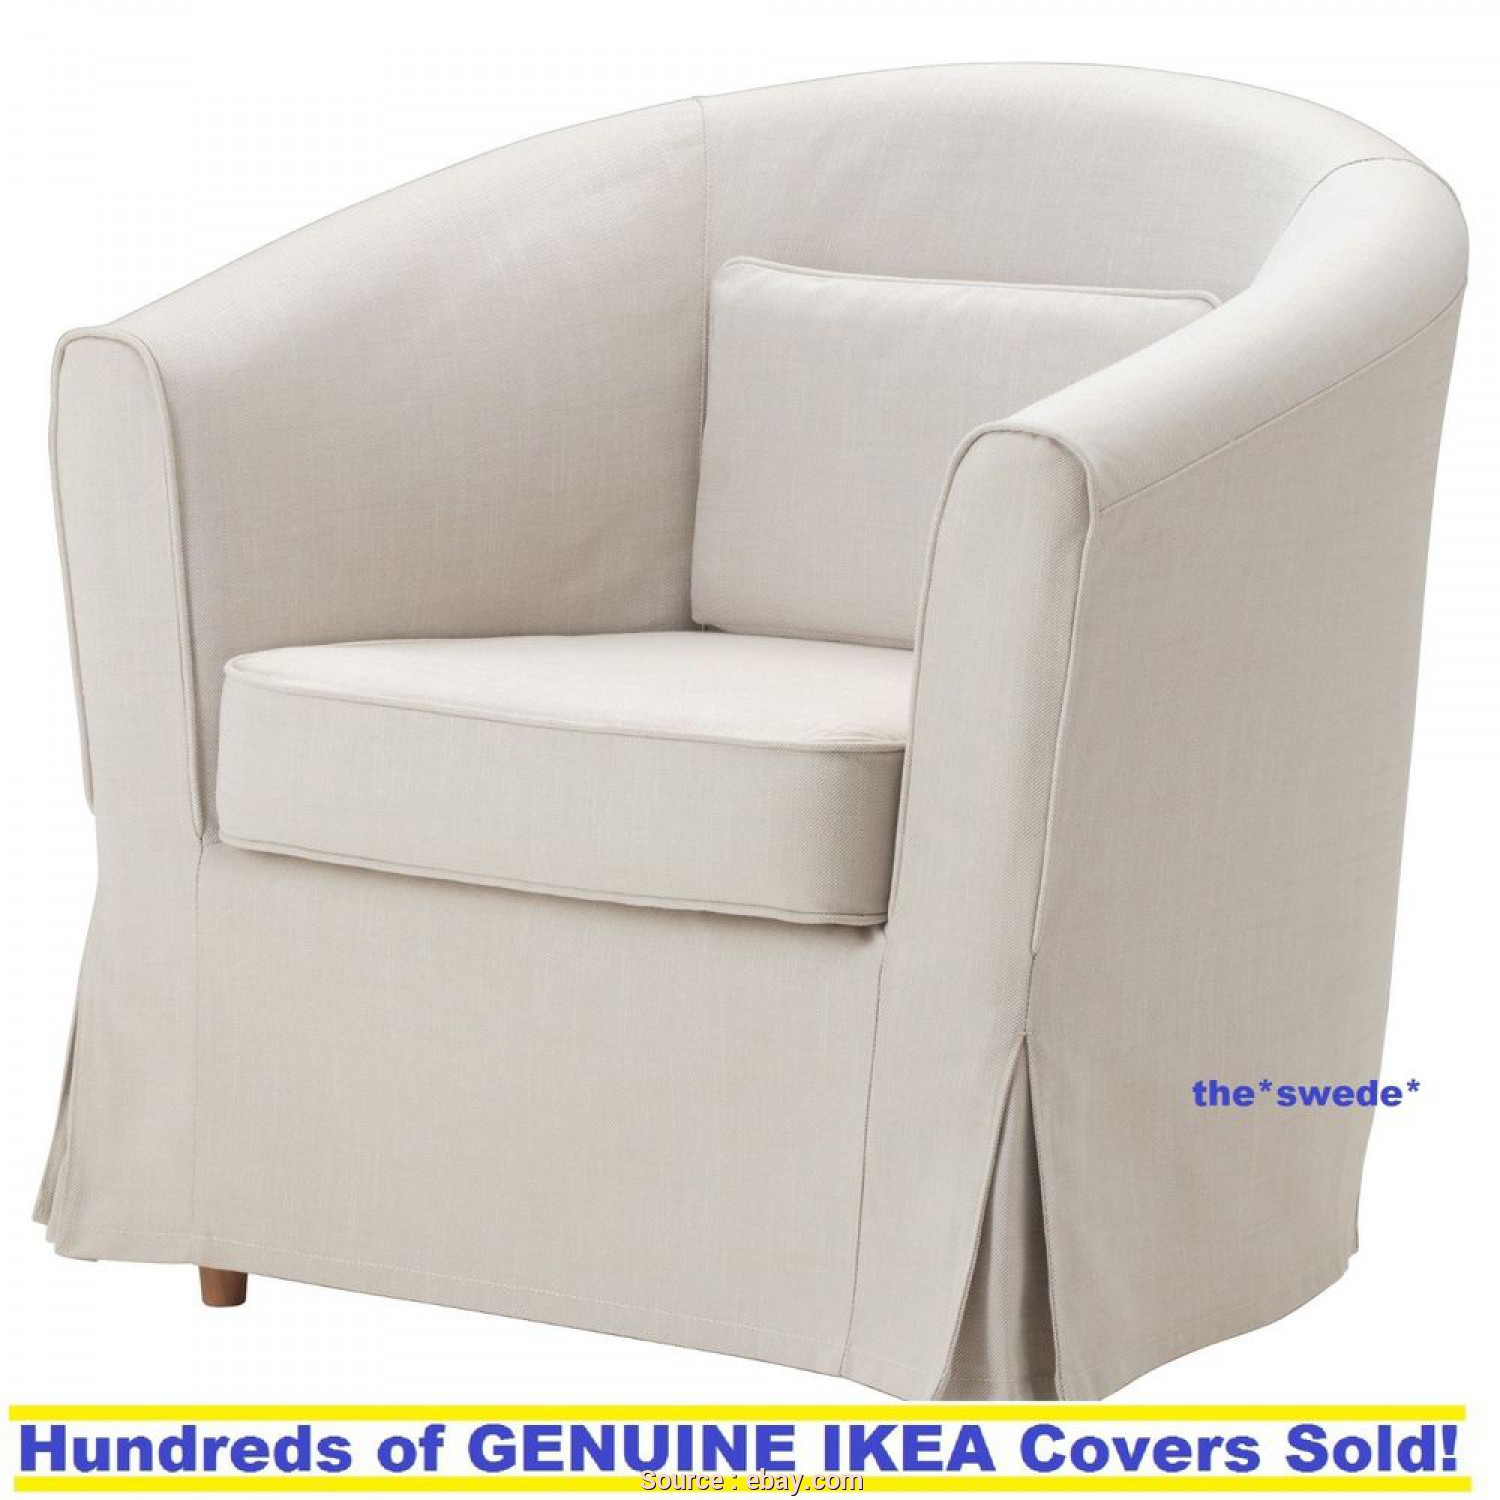 Poltrona Ikea Tullsta, Divertente Details About Ikea EKTORP TULLSTA Chair Armchair Cover Slipcover Nordvalla Beige New! Sealed!